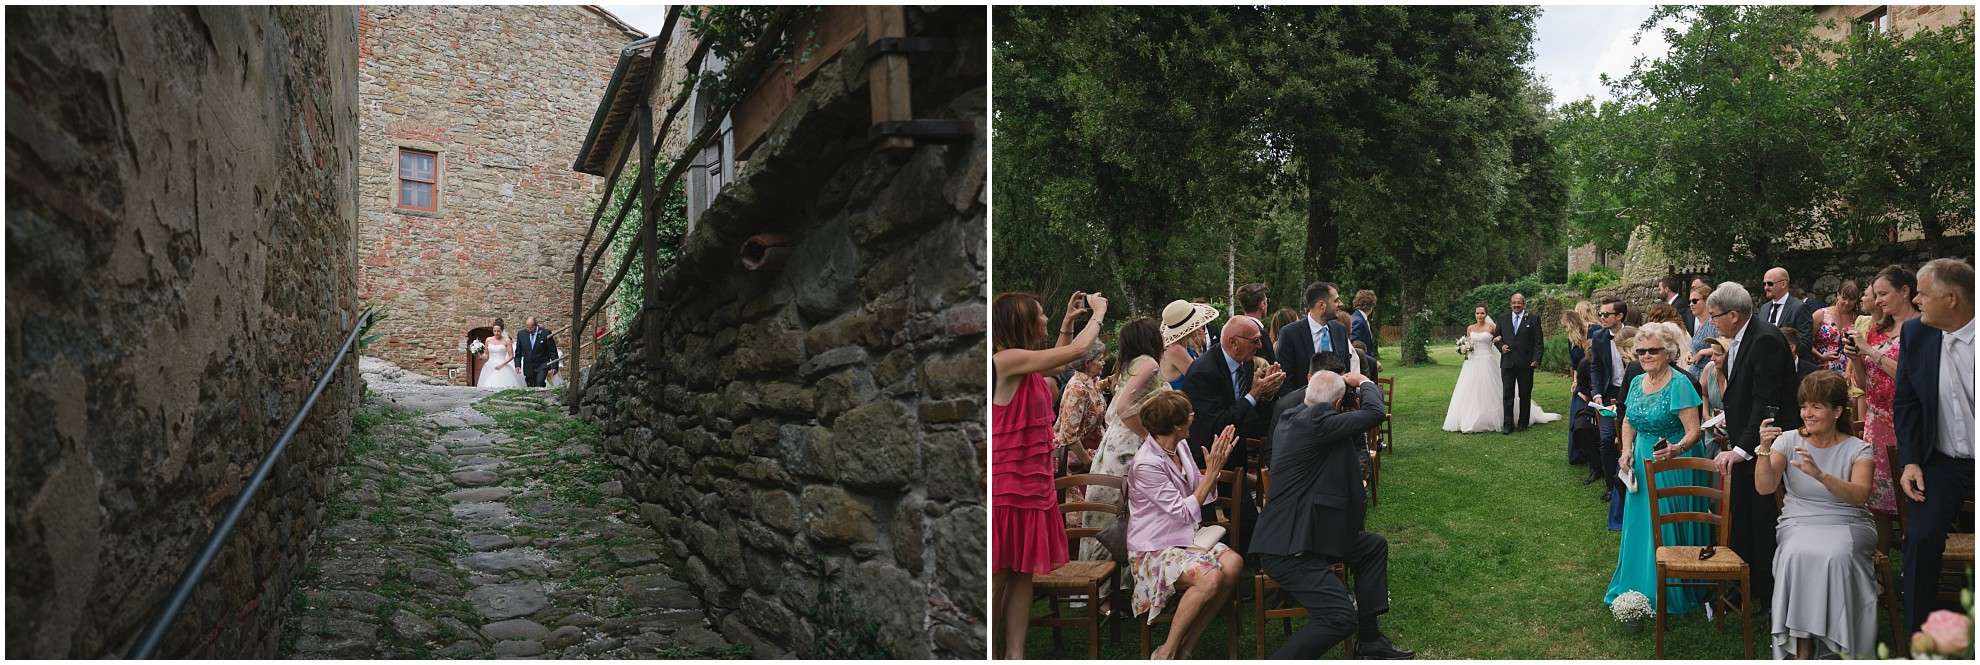 tuscany-wedding-photographer-033